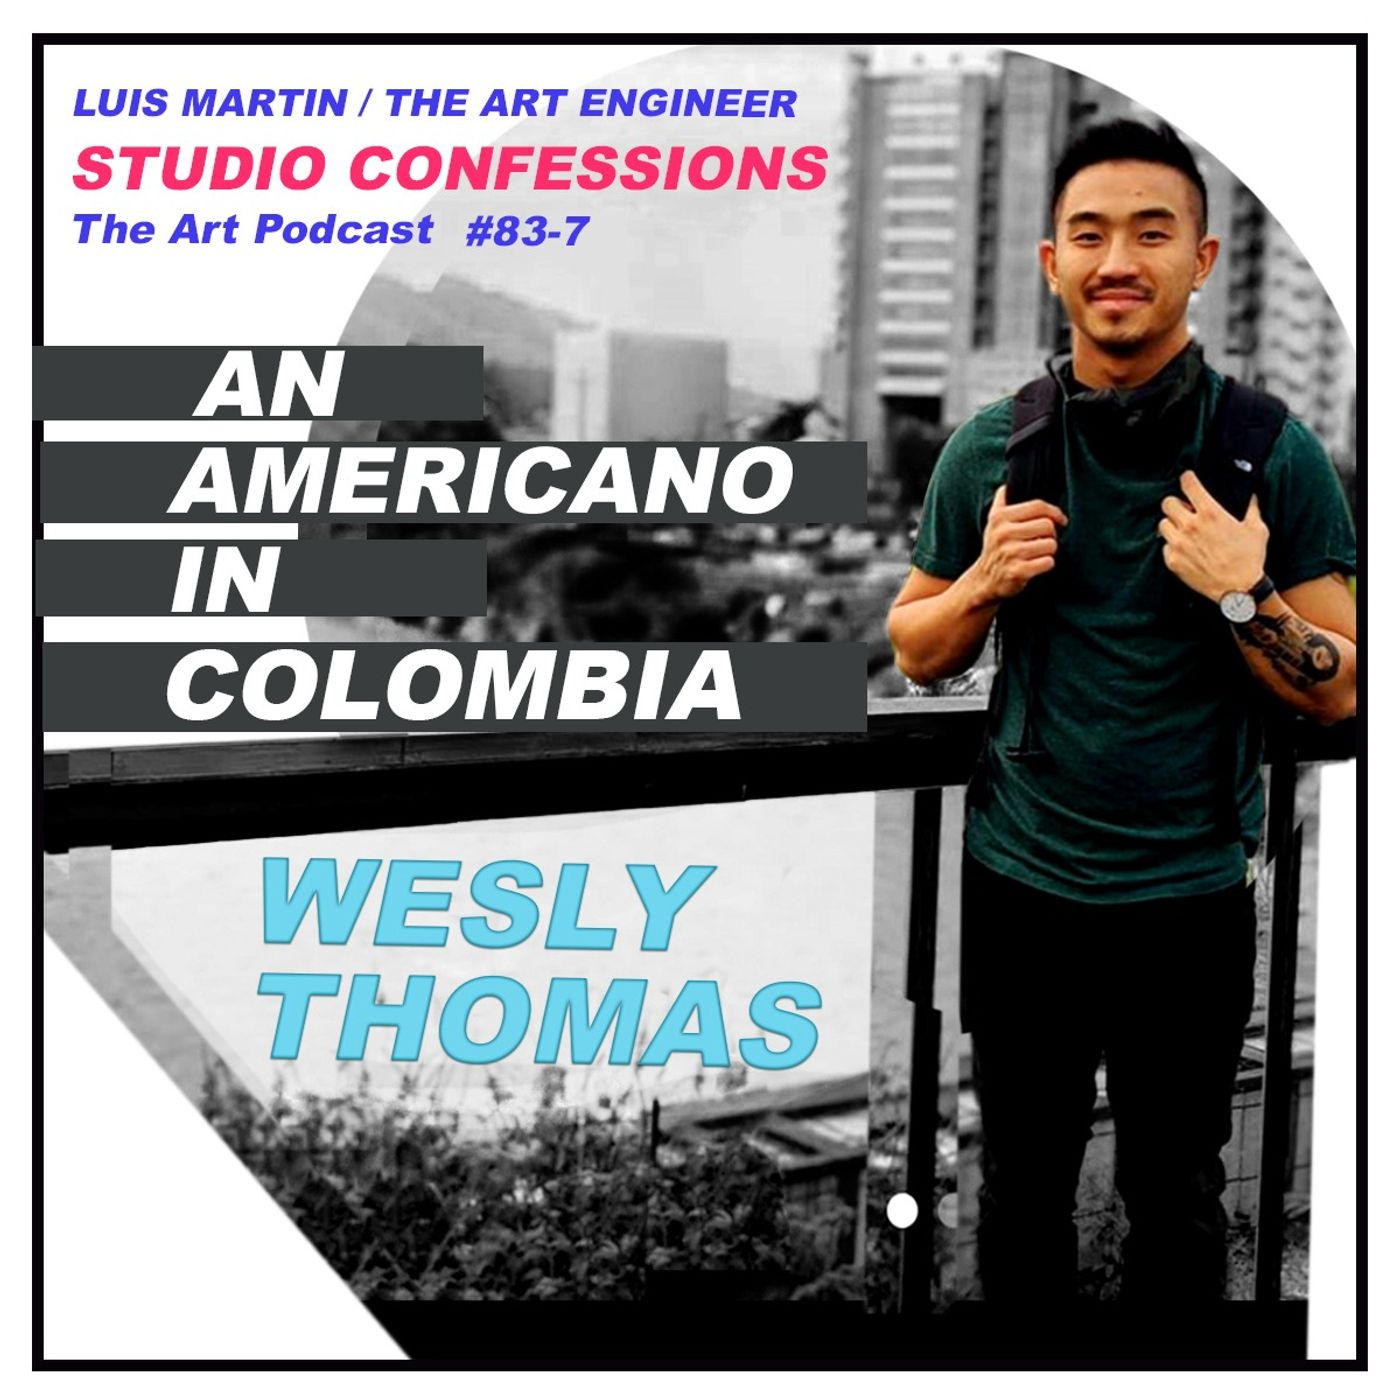 Wesly Thomas: An Americano in Colombia